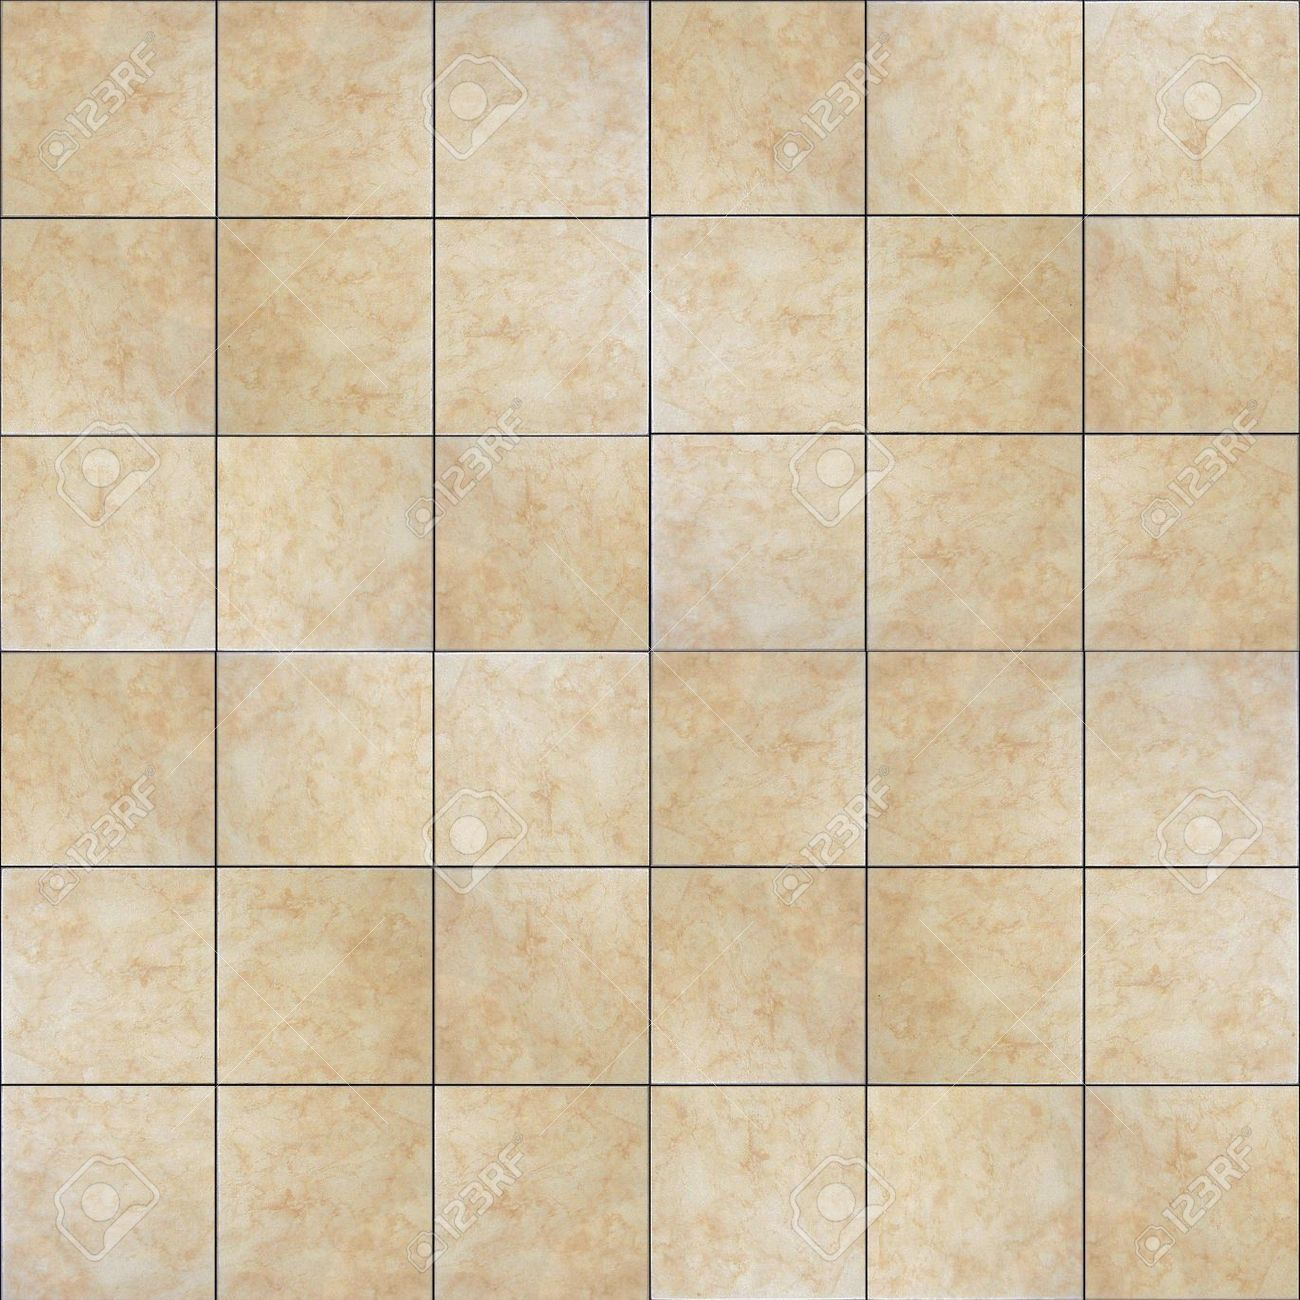 Brown Bathroom Tiles Texture Perfect Yellow Brown Bathroom Tiles Texture Style